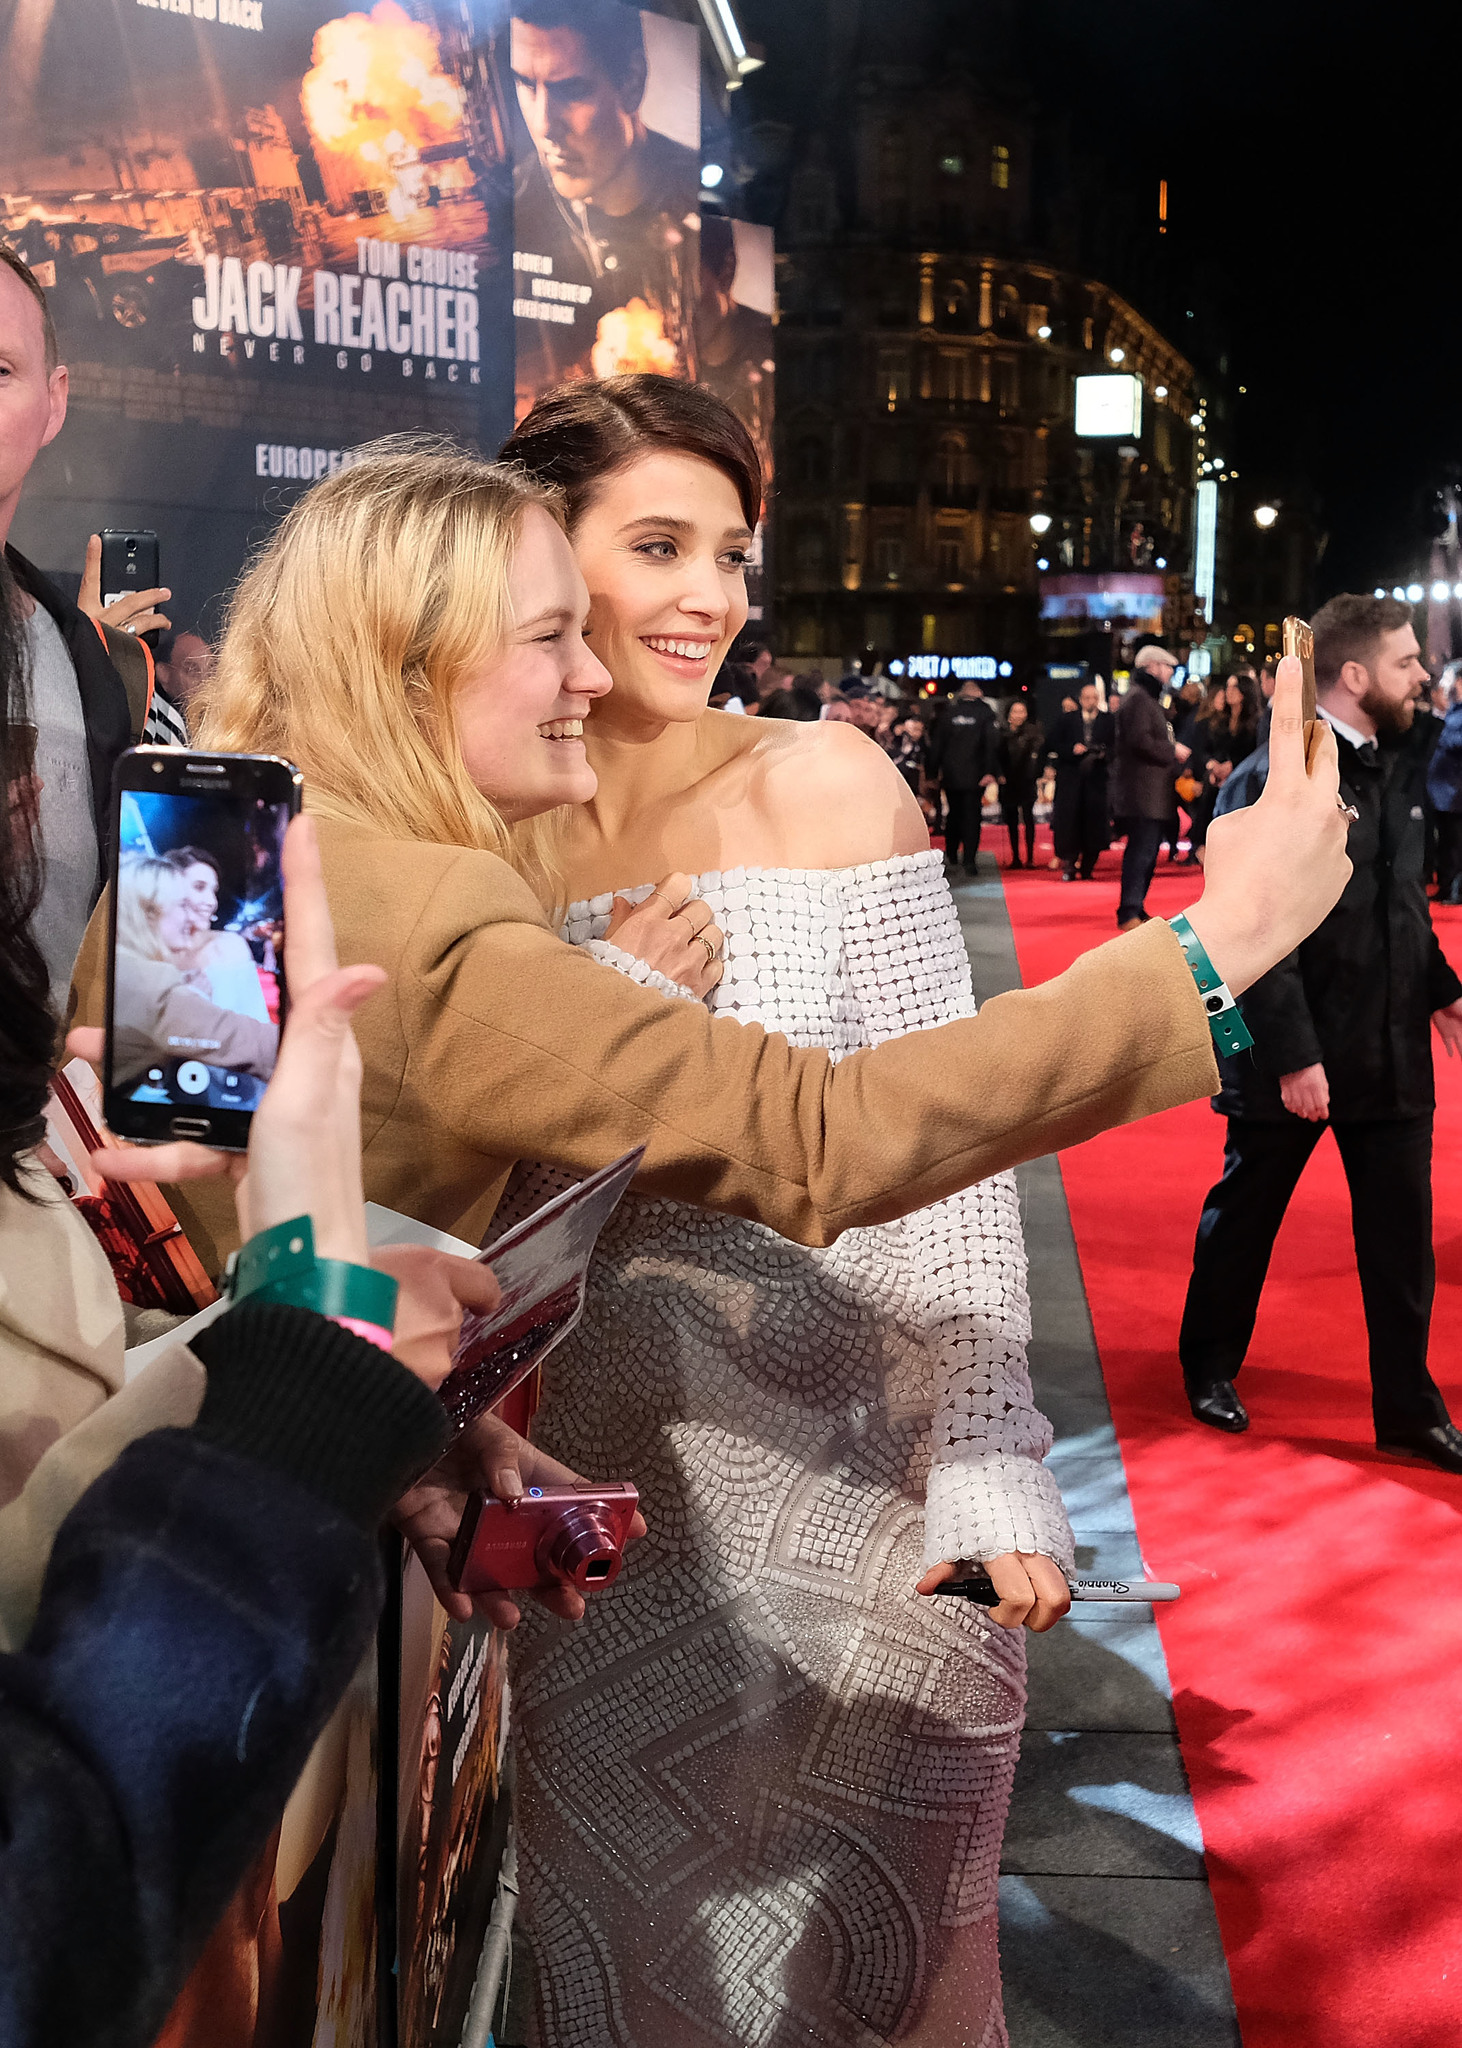 Cobie Smulders at an event for Jack Reacher: Never Go Back (2016)